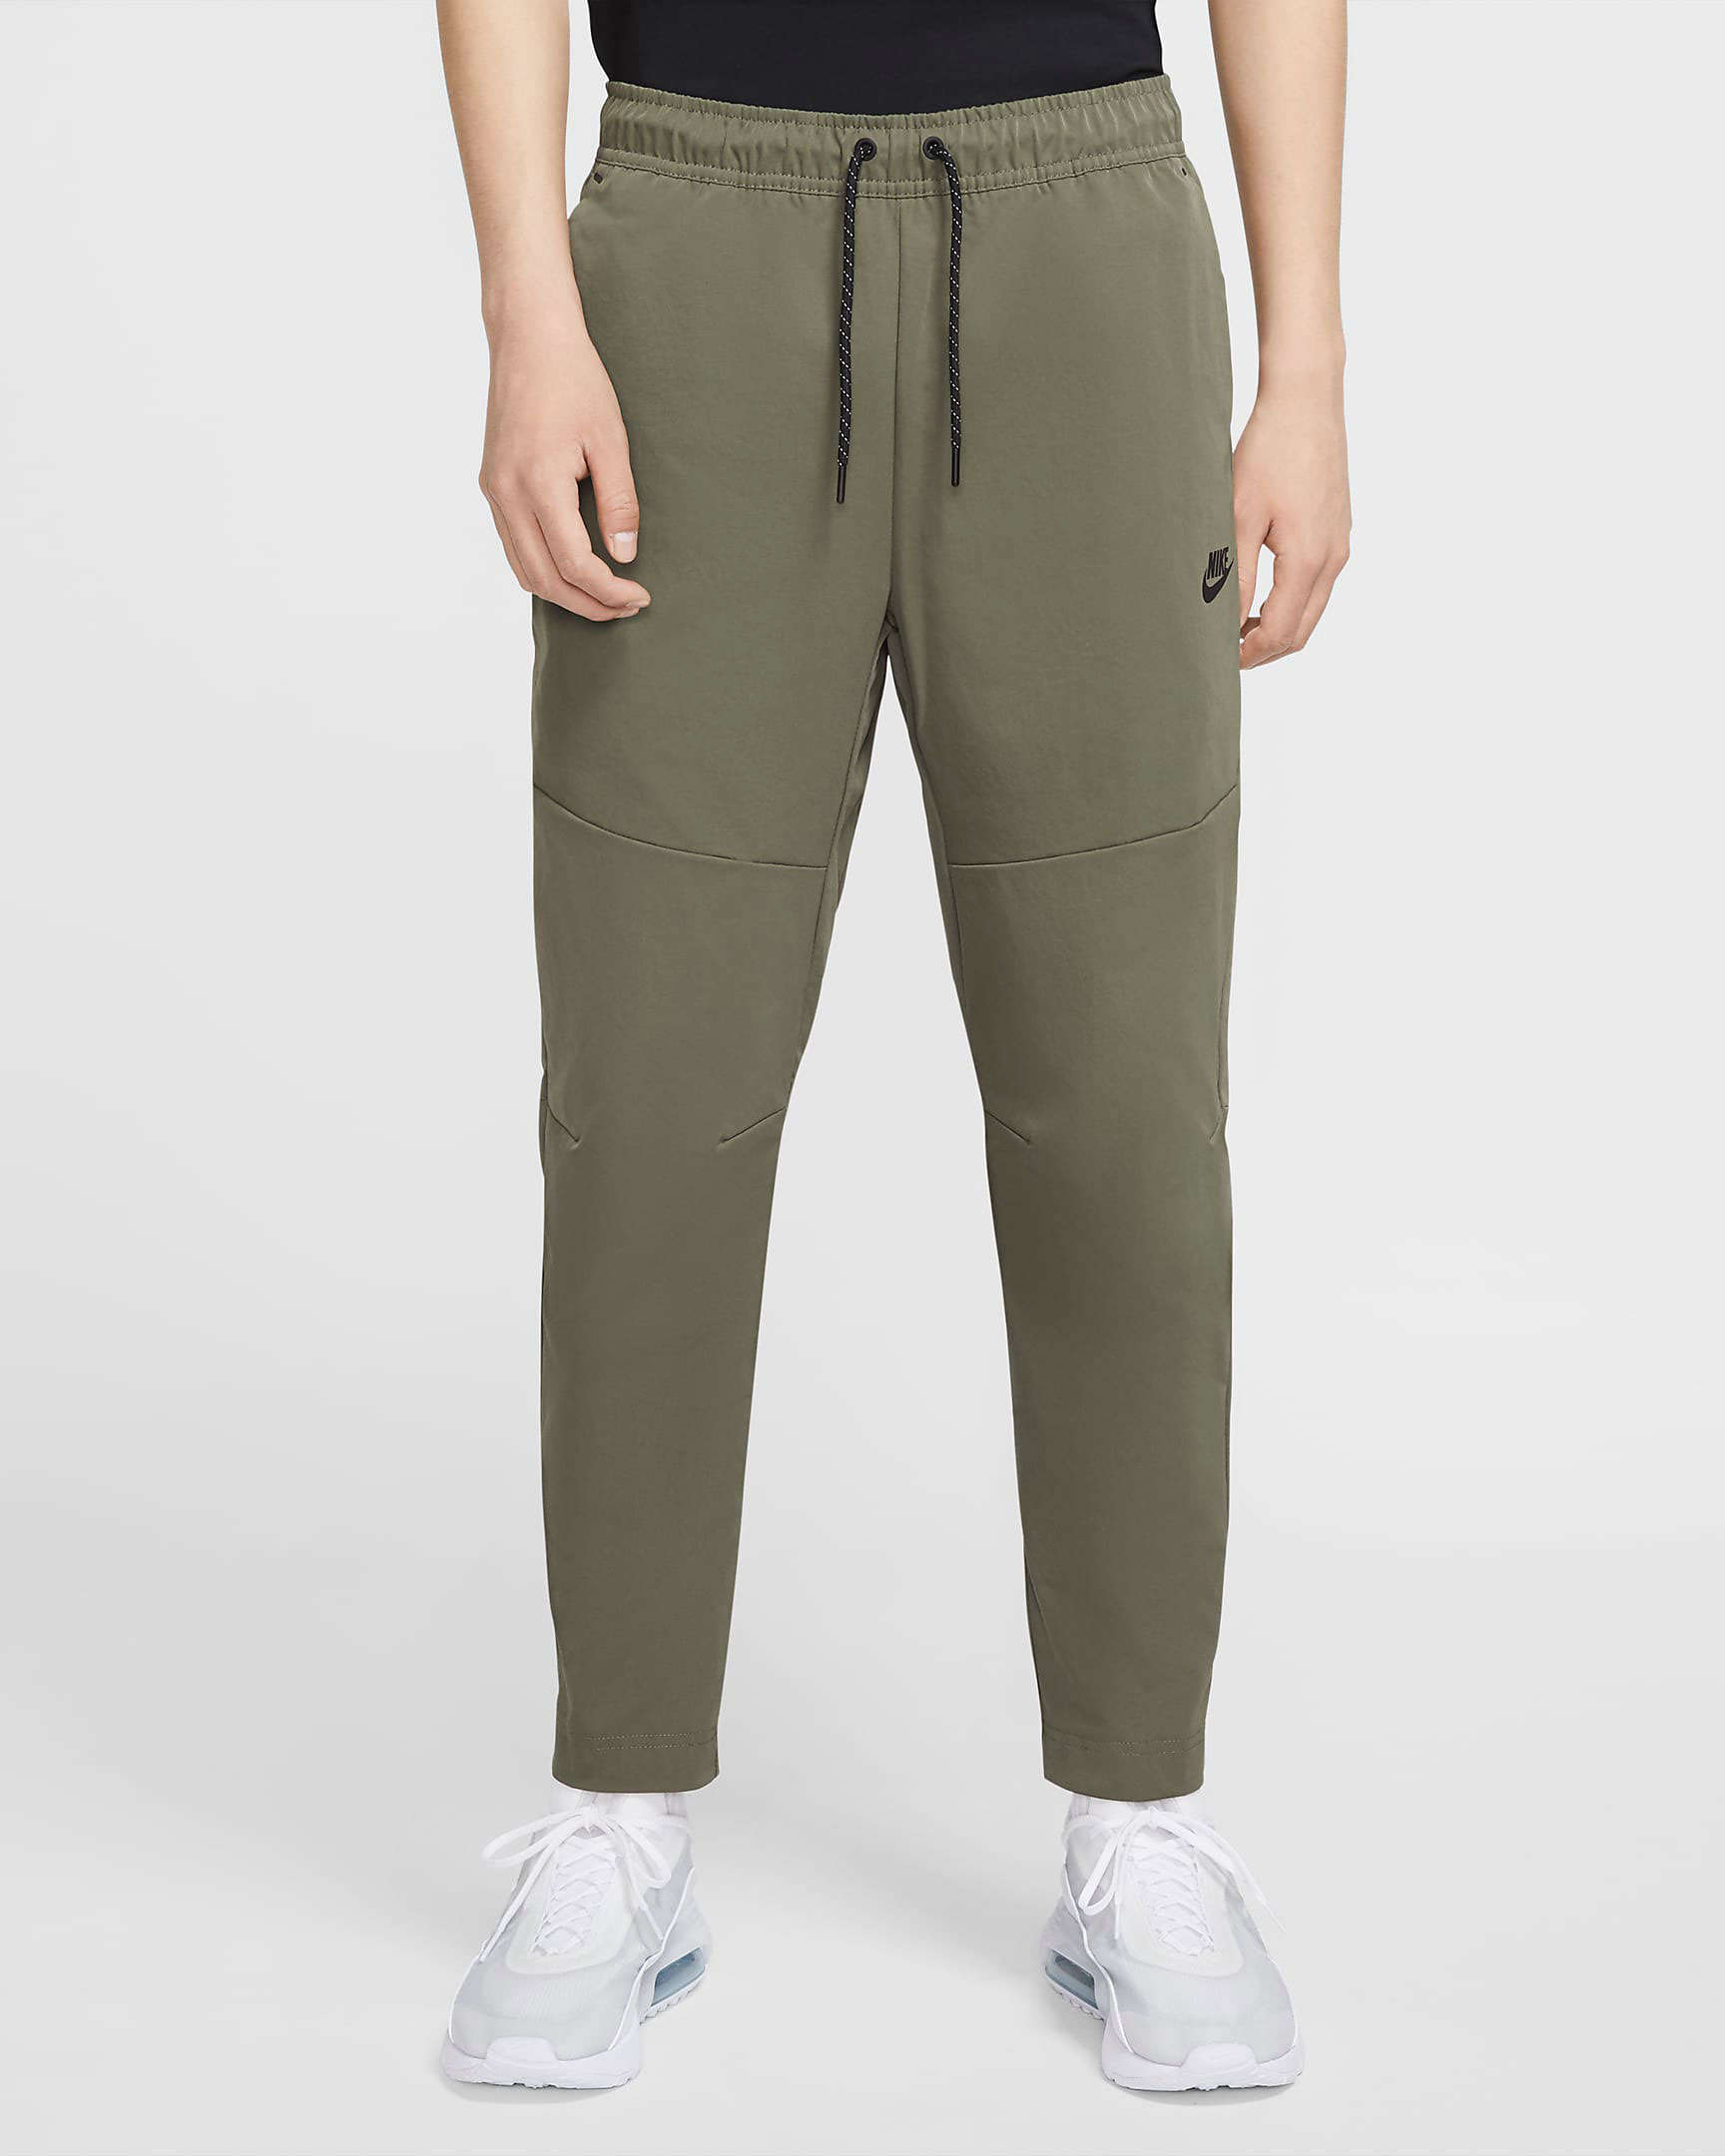 nike-sportswear-pants-twilight-marsh-pants